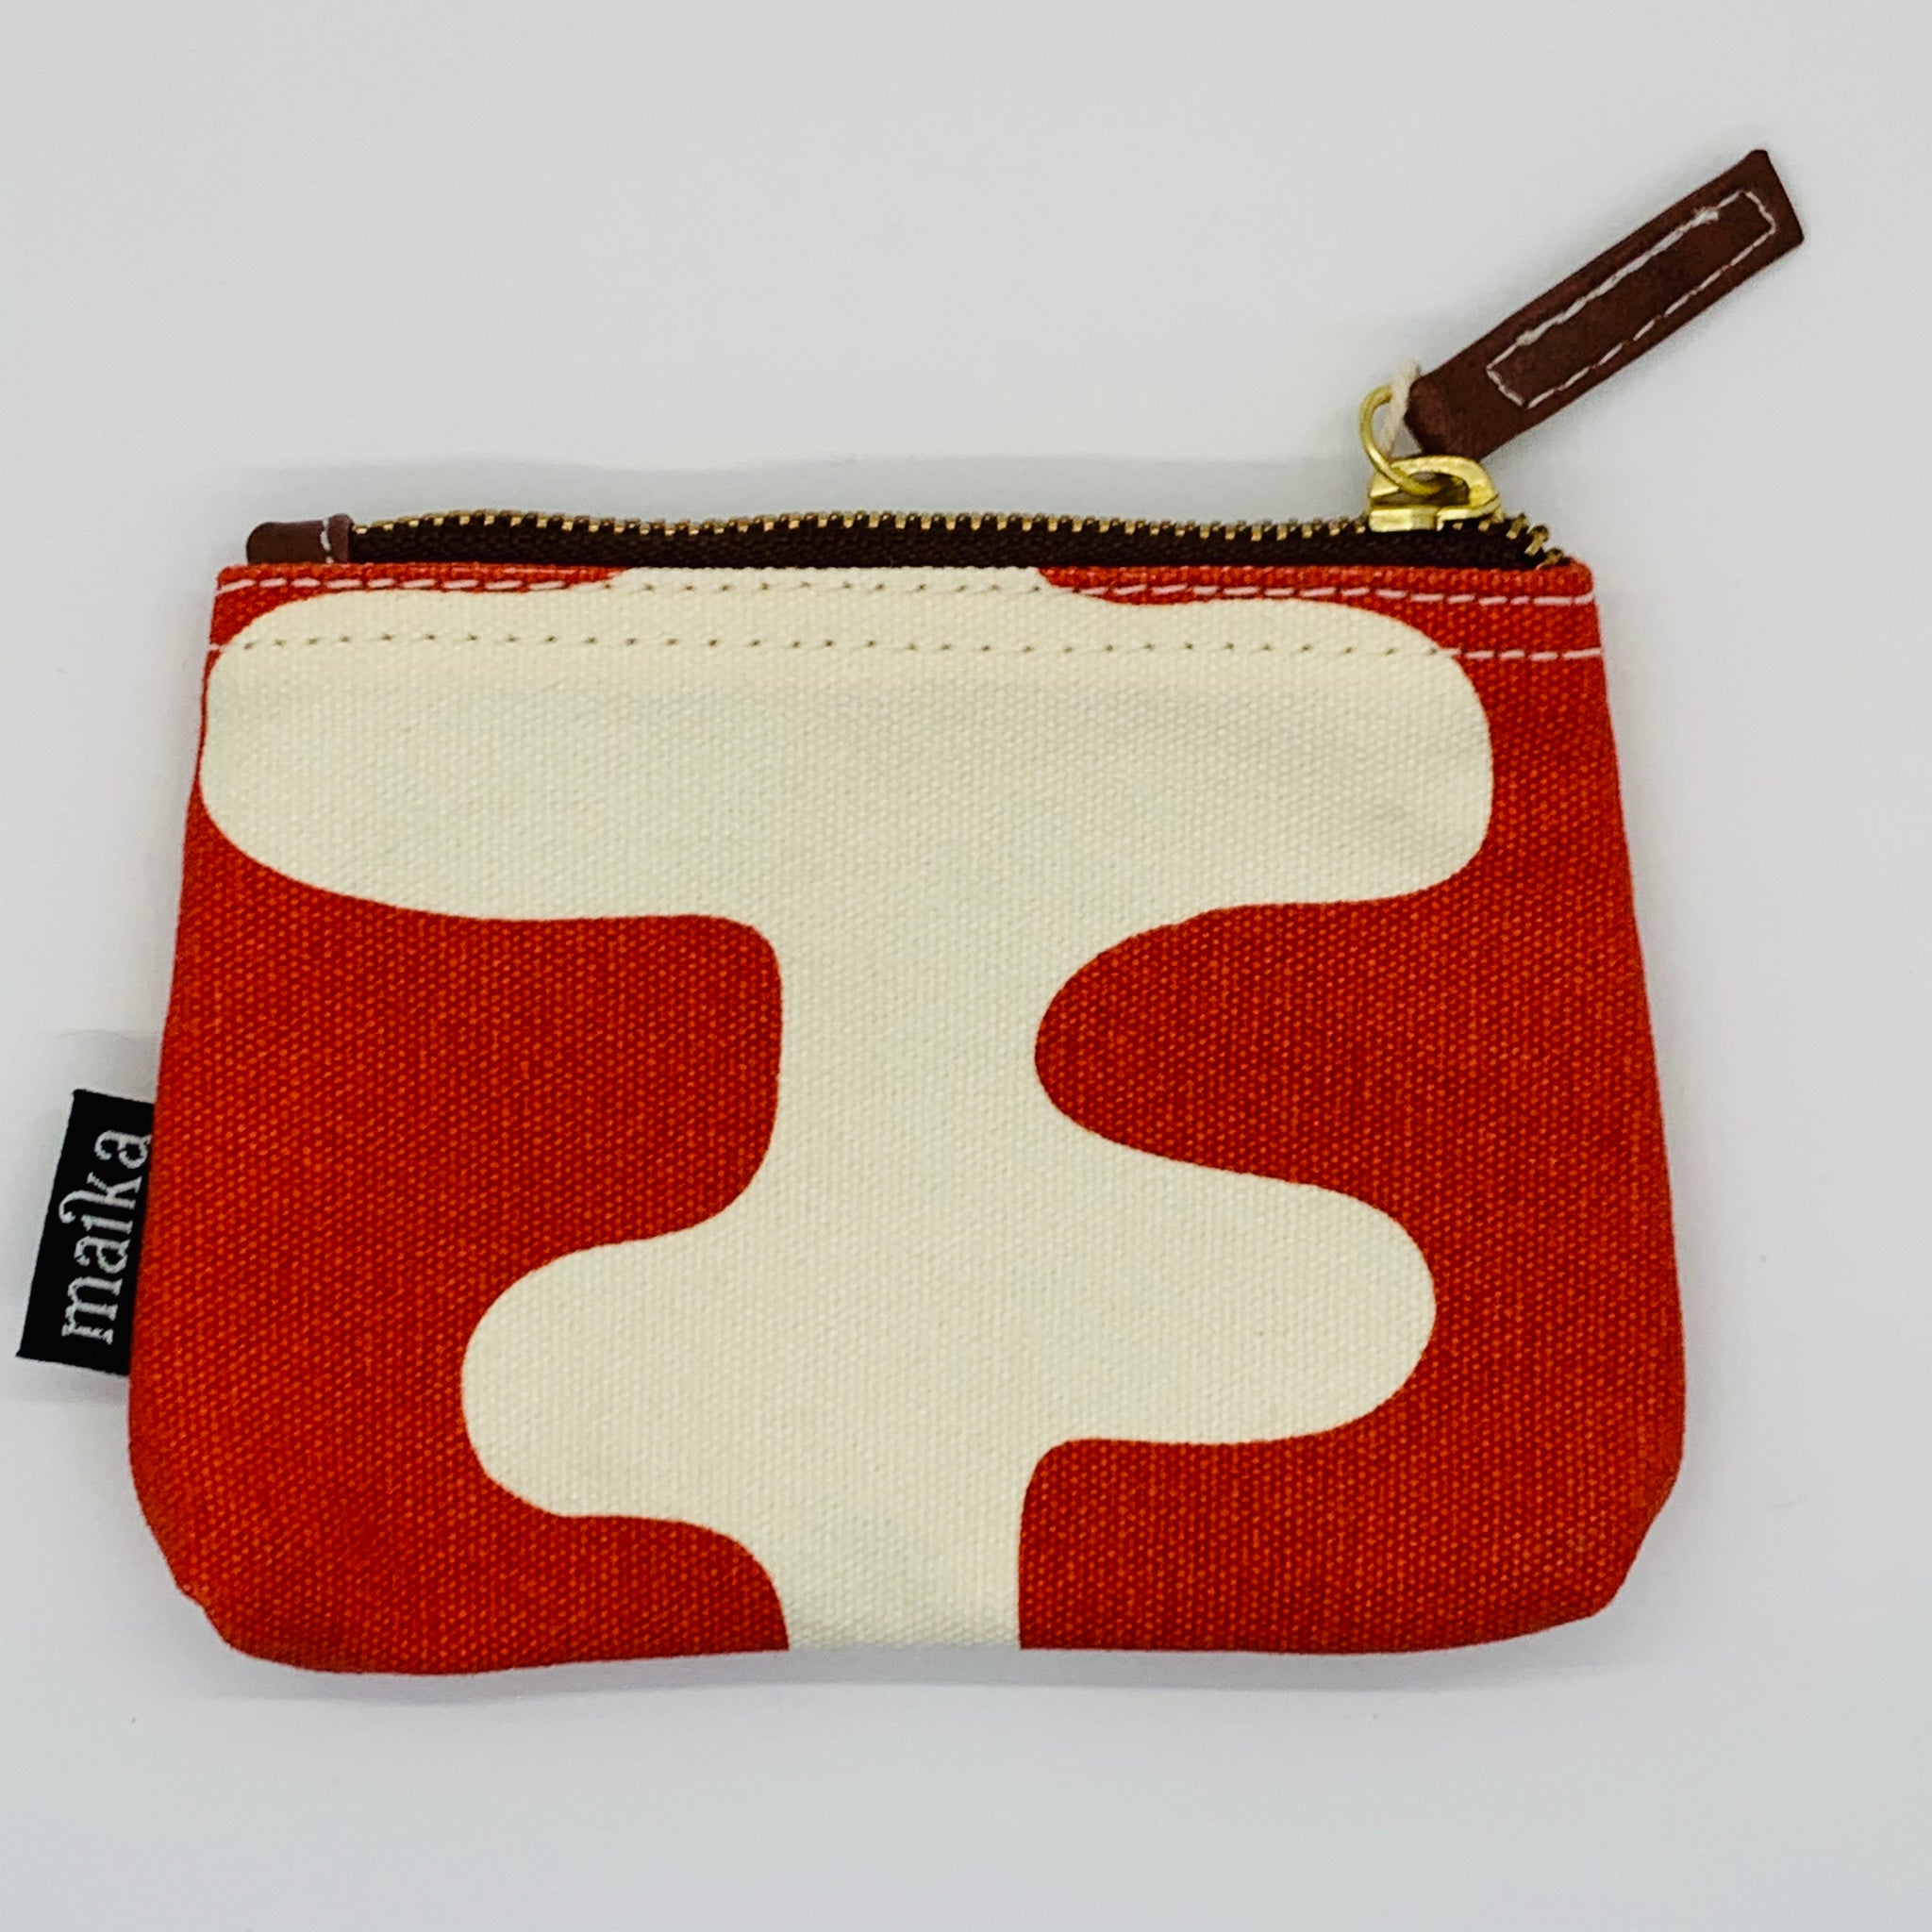 Echo Tangerine Canvas Pouch Small